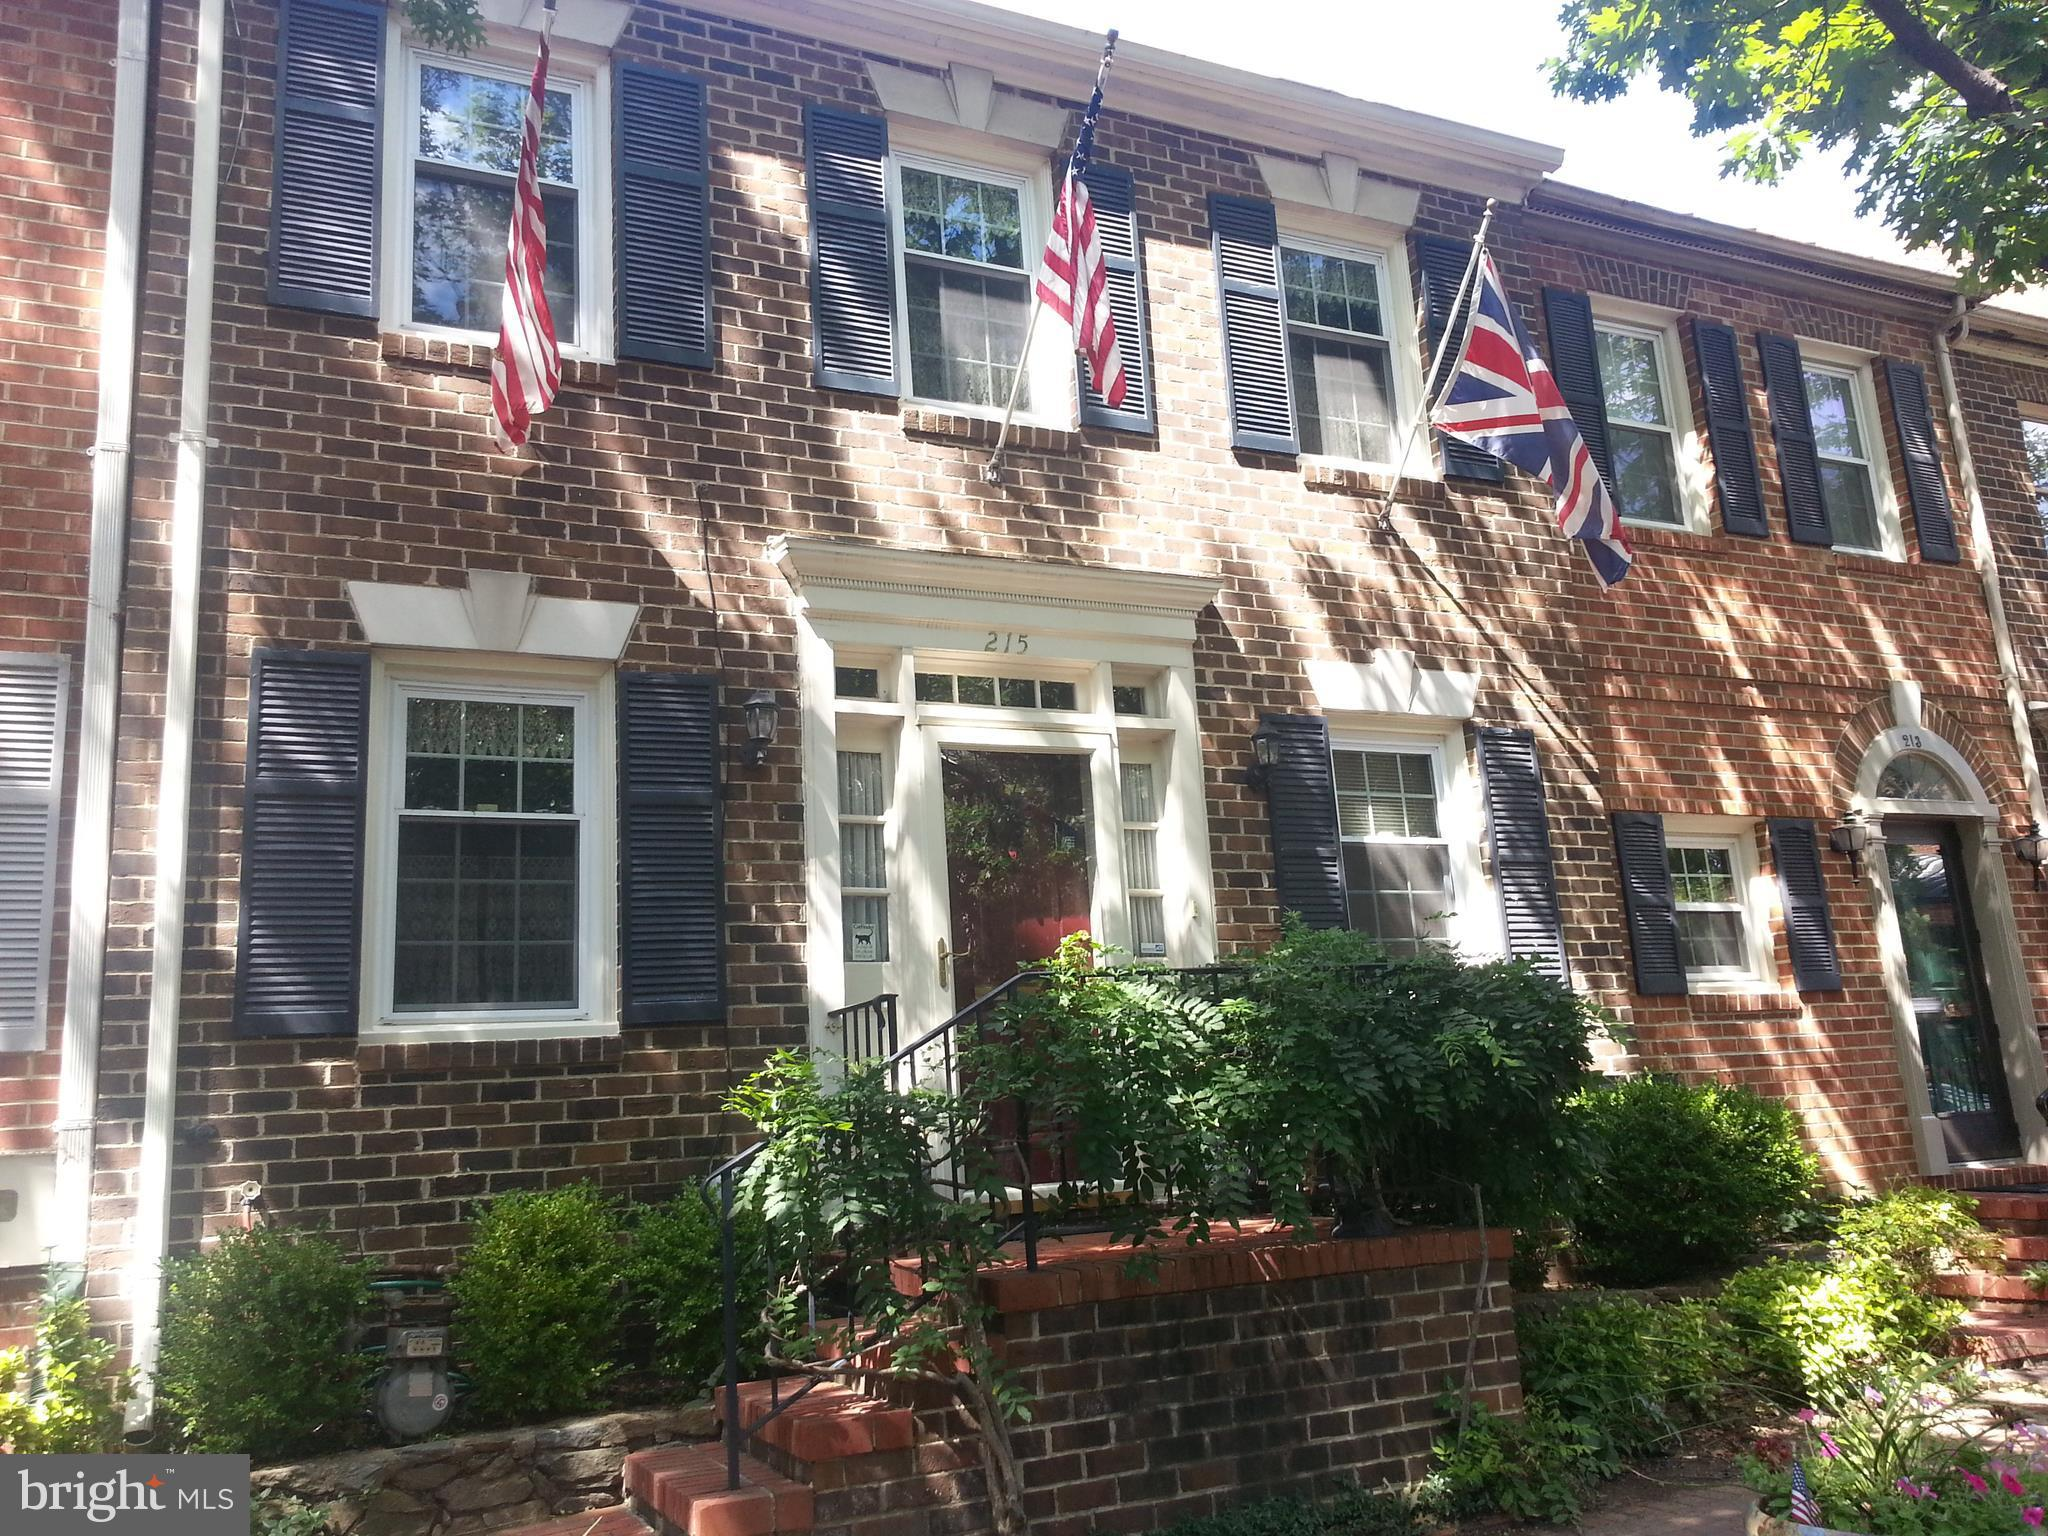 2 Level Living!  Off St Pkg. STEPS FROM THE POTOMAC RIVER! 4 sts to King St! LOCATION! LOCATION! 3 good sized BR's, 2 Full BA's plus main level half bath. Eat In Kitchen+ separate DR, step down LR has gas fpl flanked by custom bookshelves & looks out to private patio. Sep Laundry Rm. Full attic for storage/potential expansion! Move In Condition!  Sparkling..  Bring your offer!